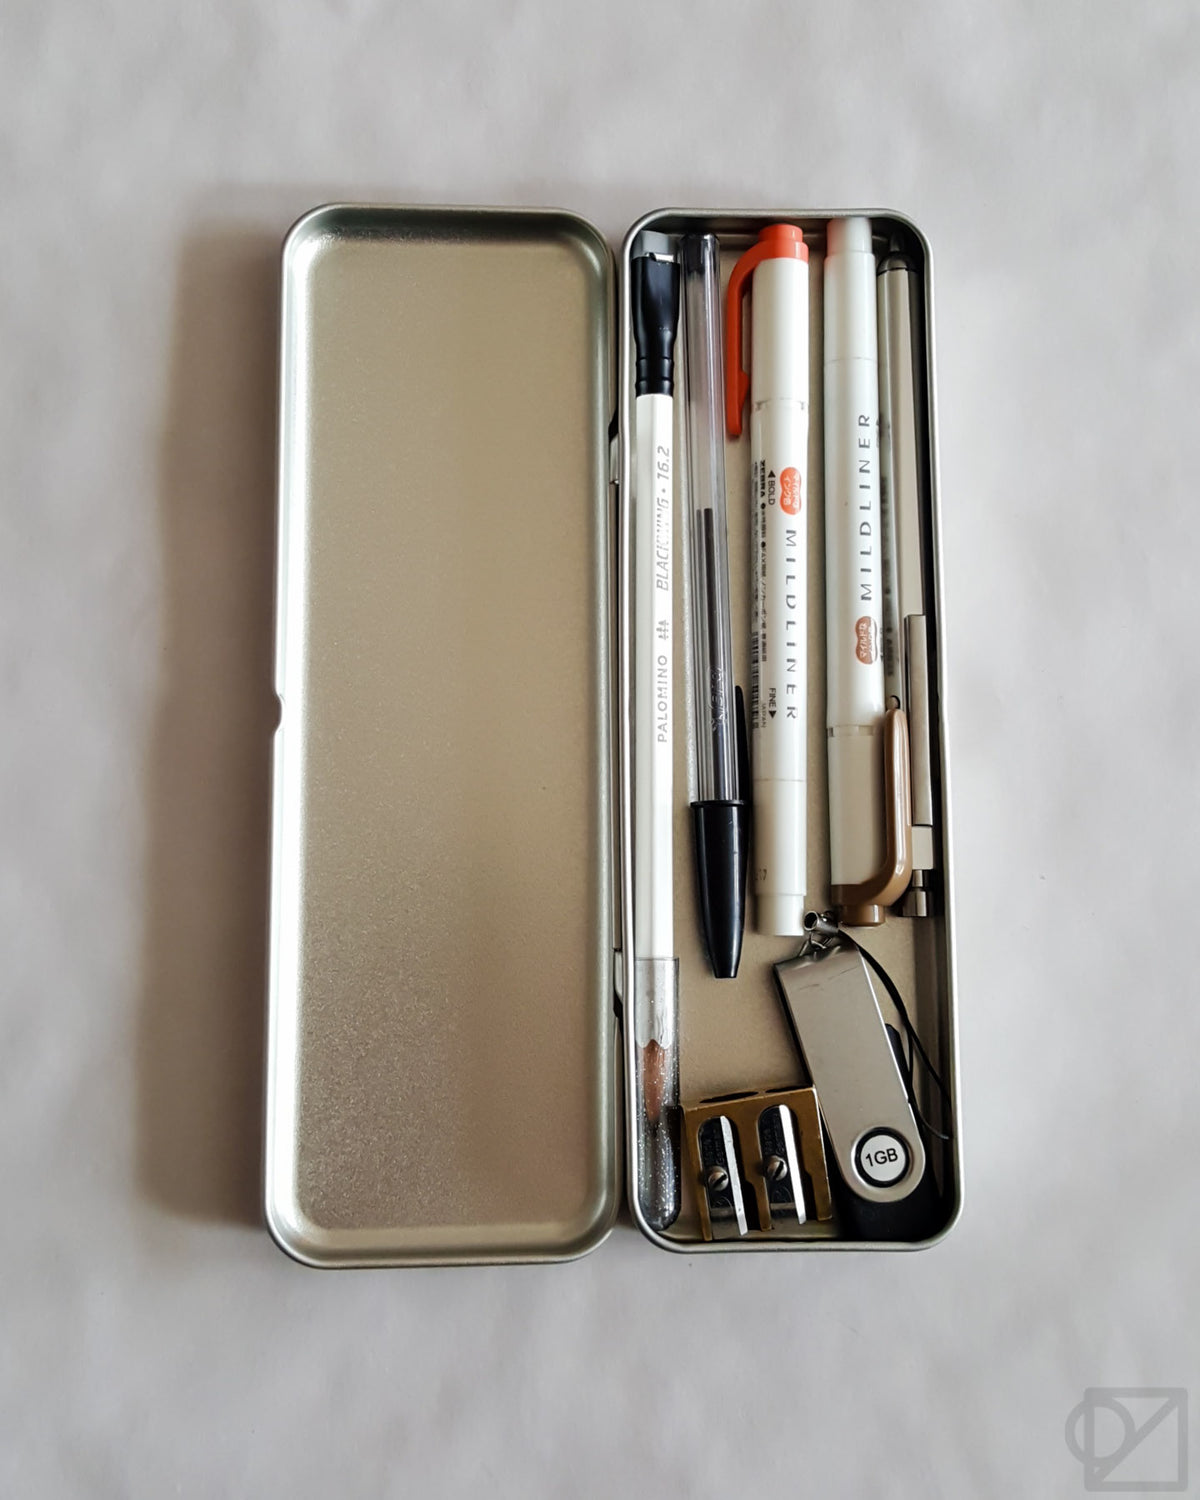 SLIP-ON Stainless Steel Flat Pen Case